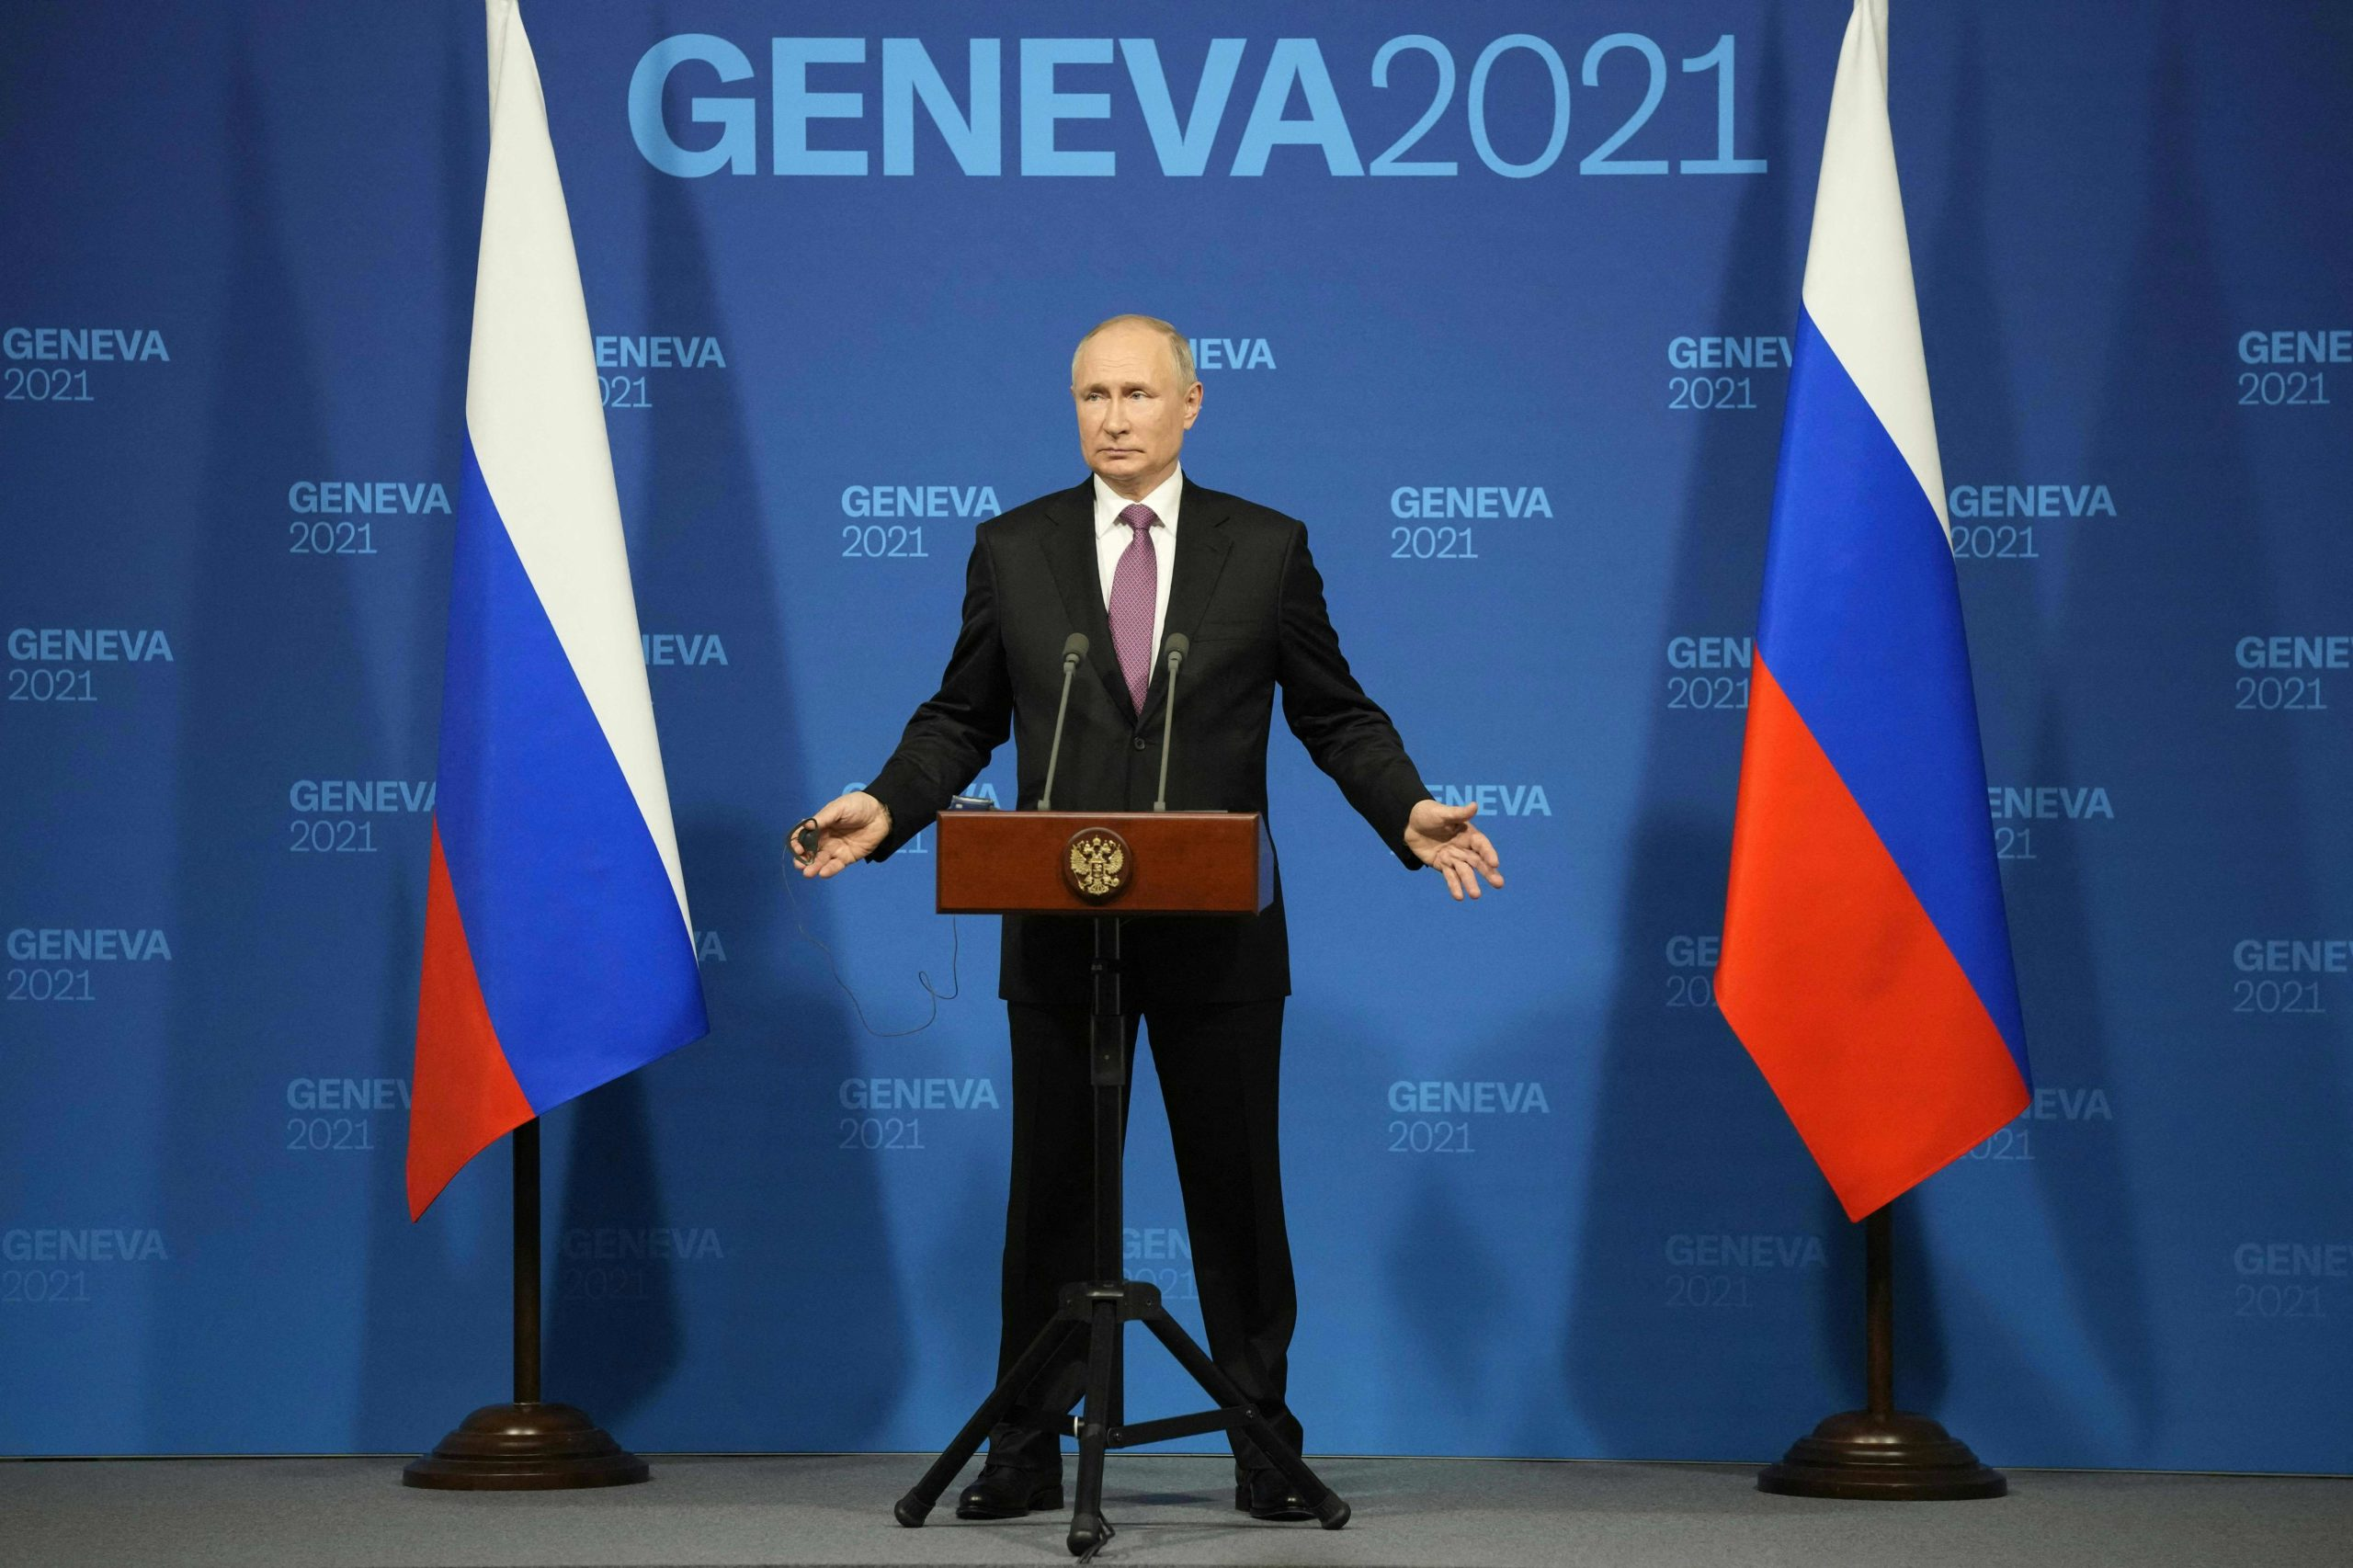 Russia's President Vladimir Putin holds a press conference after the US-Russia summit in Geneva on June 16, 2021. (Alexander Zemlianichenko / POOL / AFP)